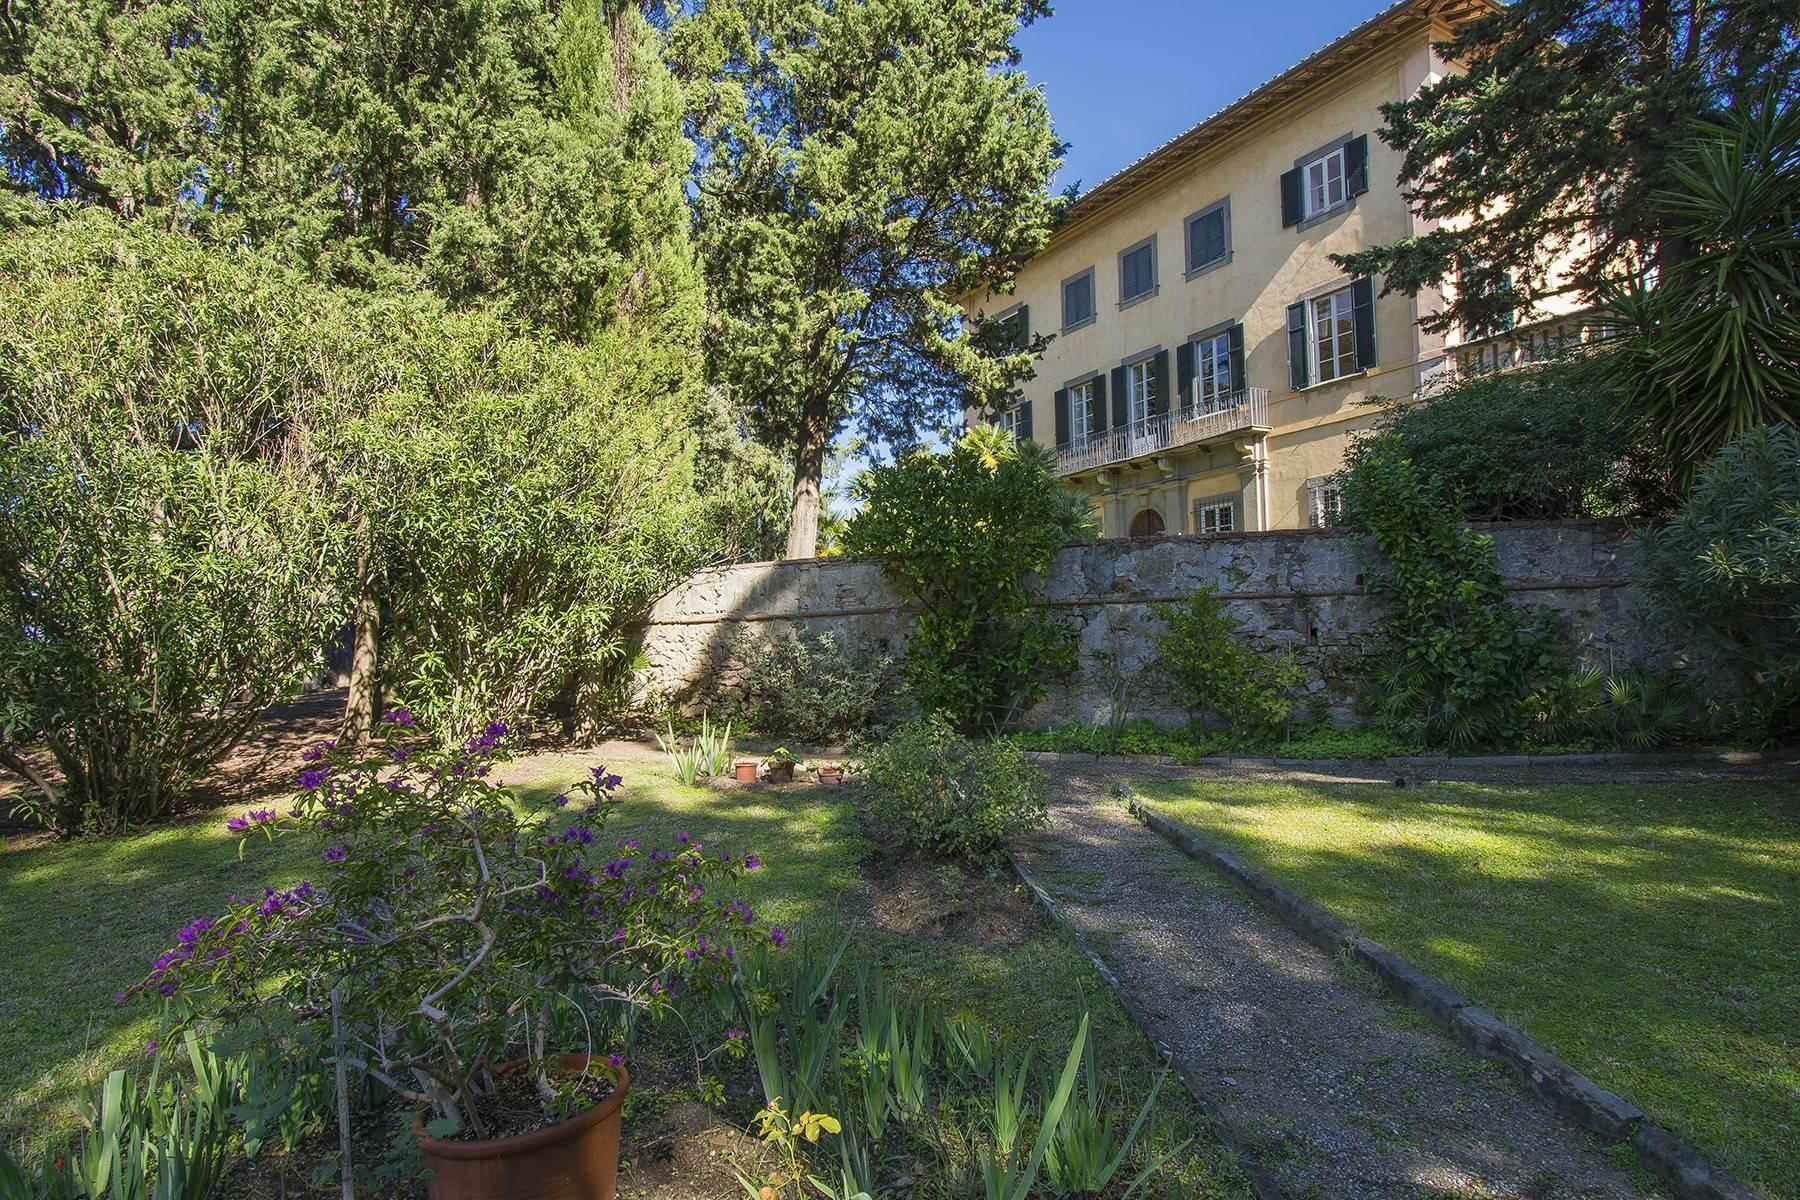 Charming Medicean Villa on the Tuscan hills - 32